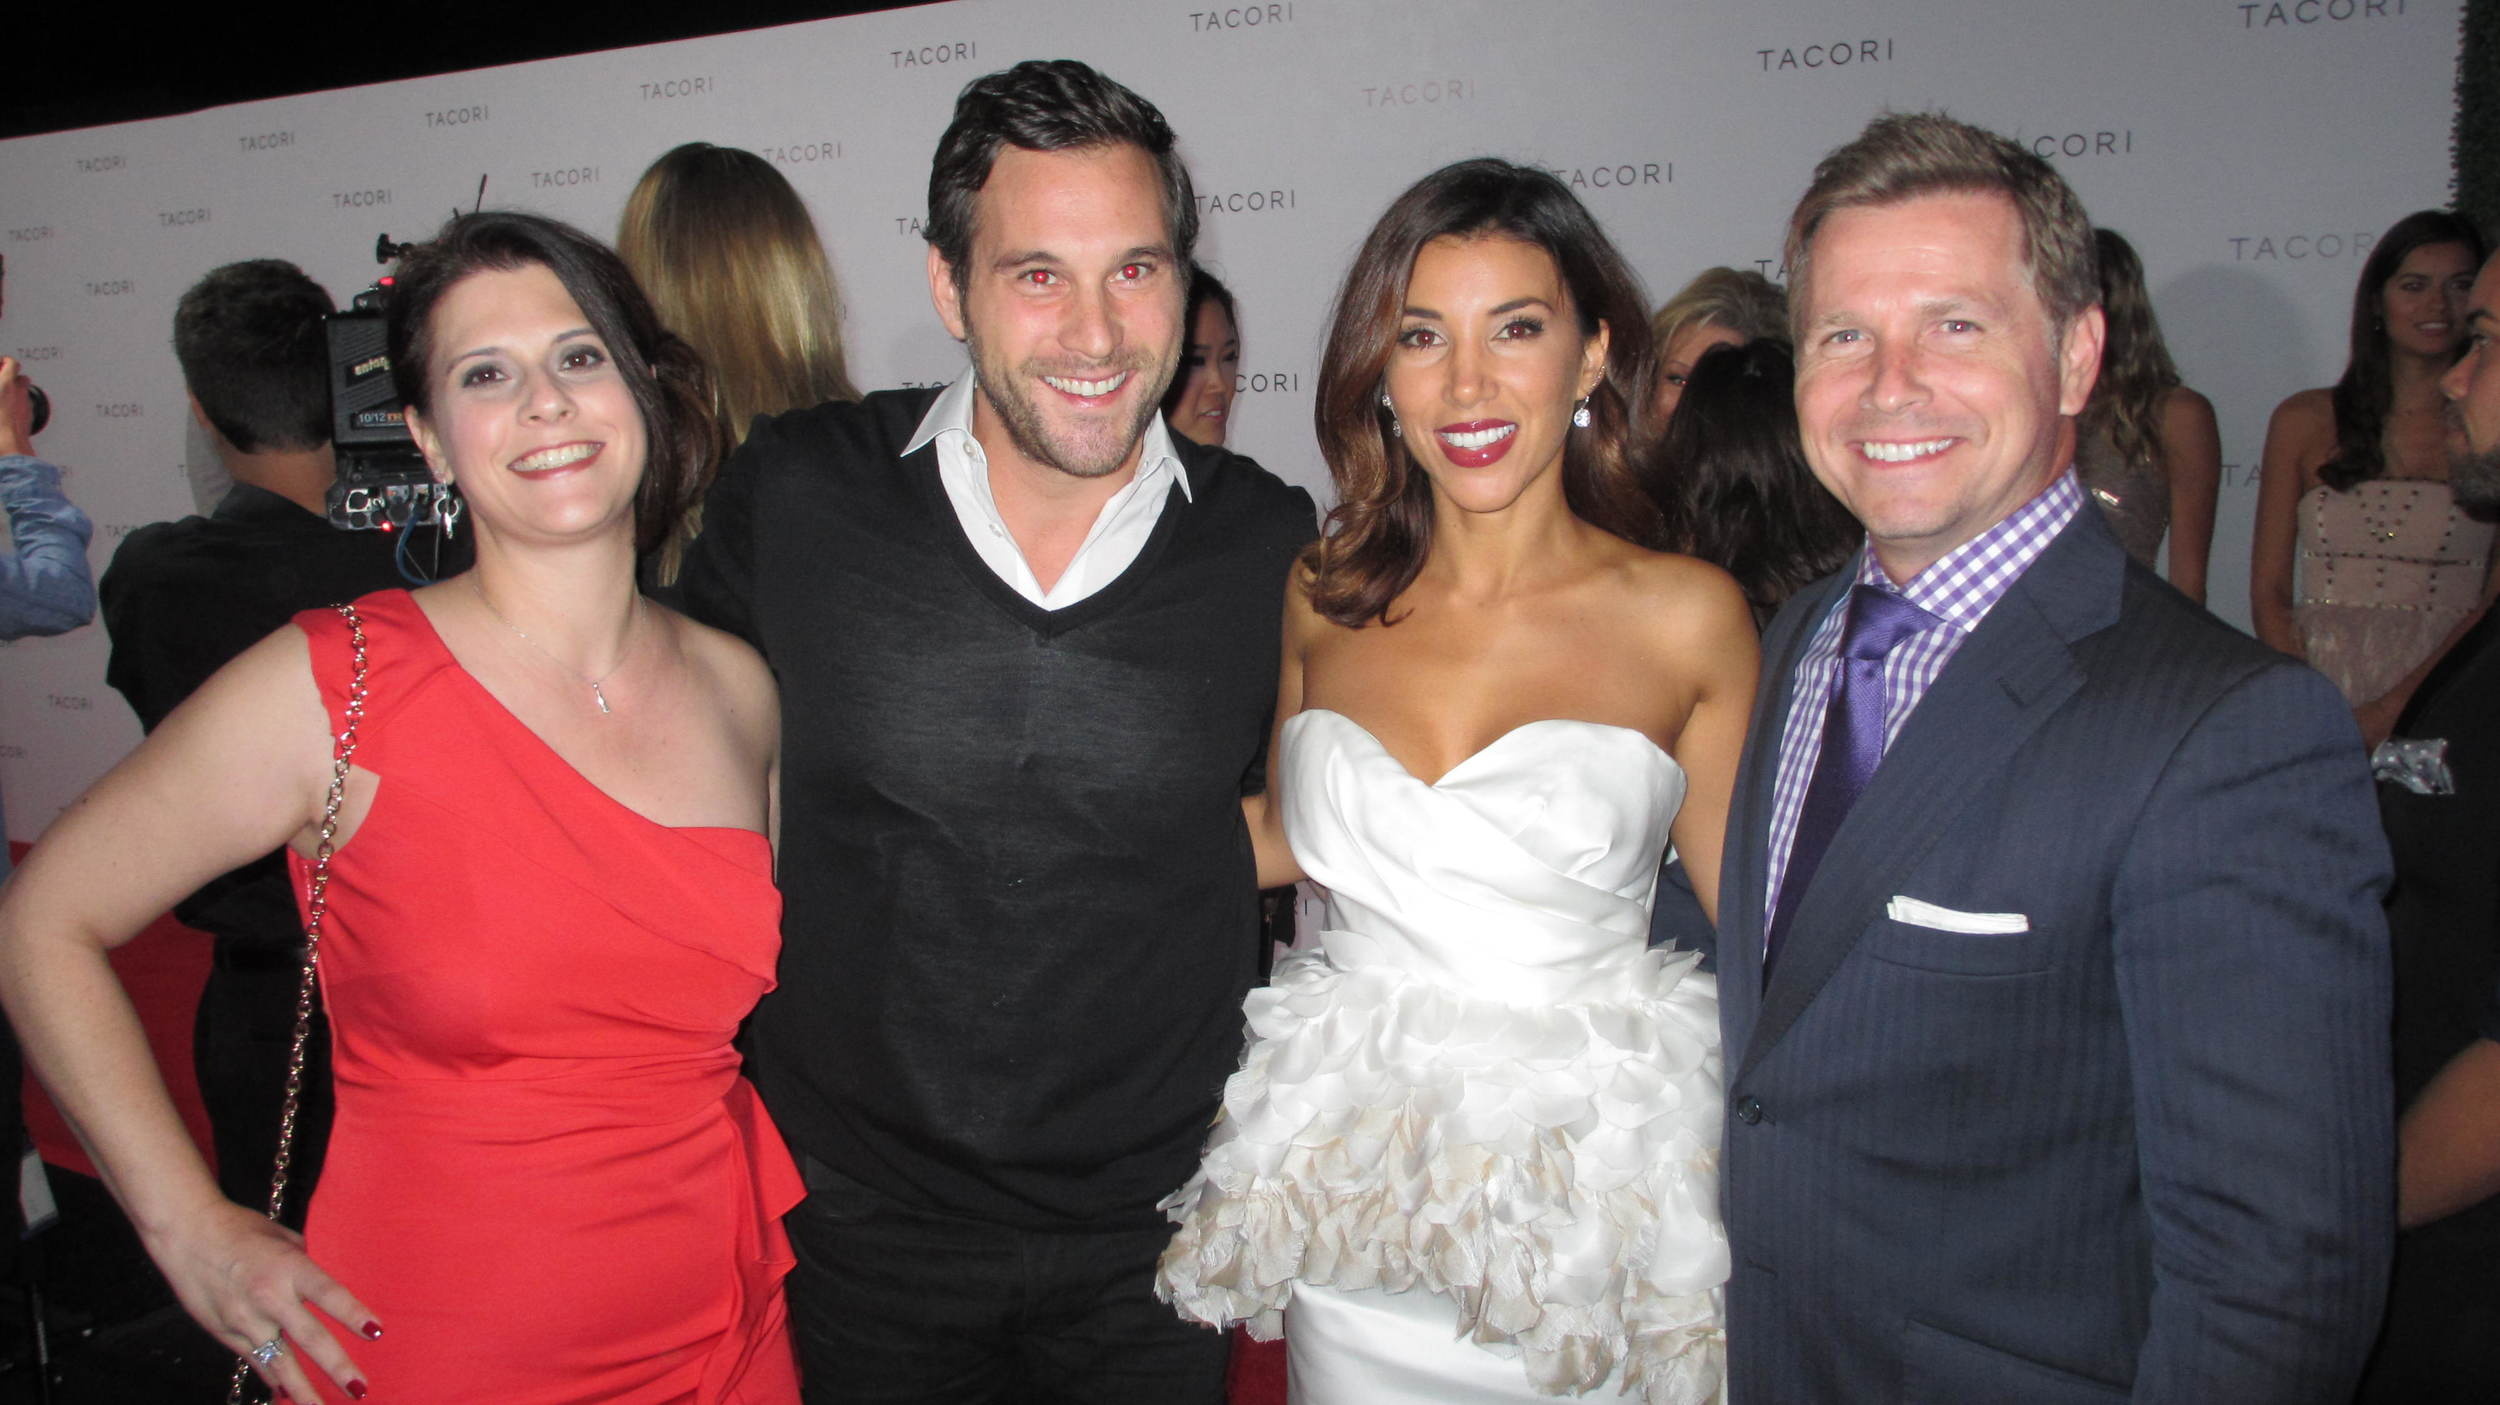 Jennifer Tromp, Scott Gorelick, Adrianna Costa & Craig Husar at Club Tacori